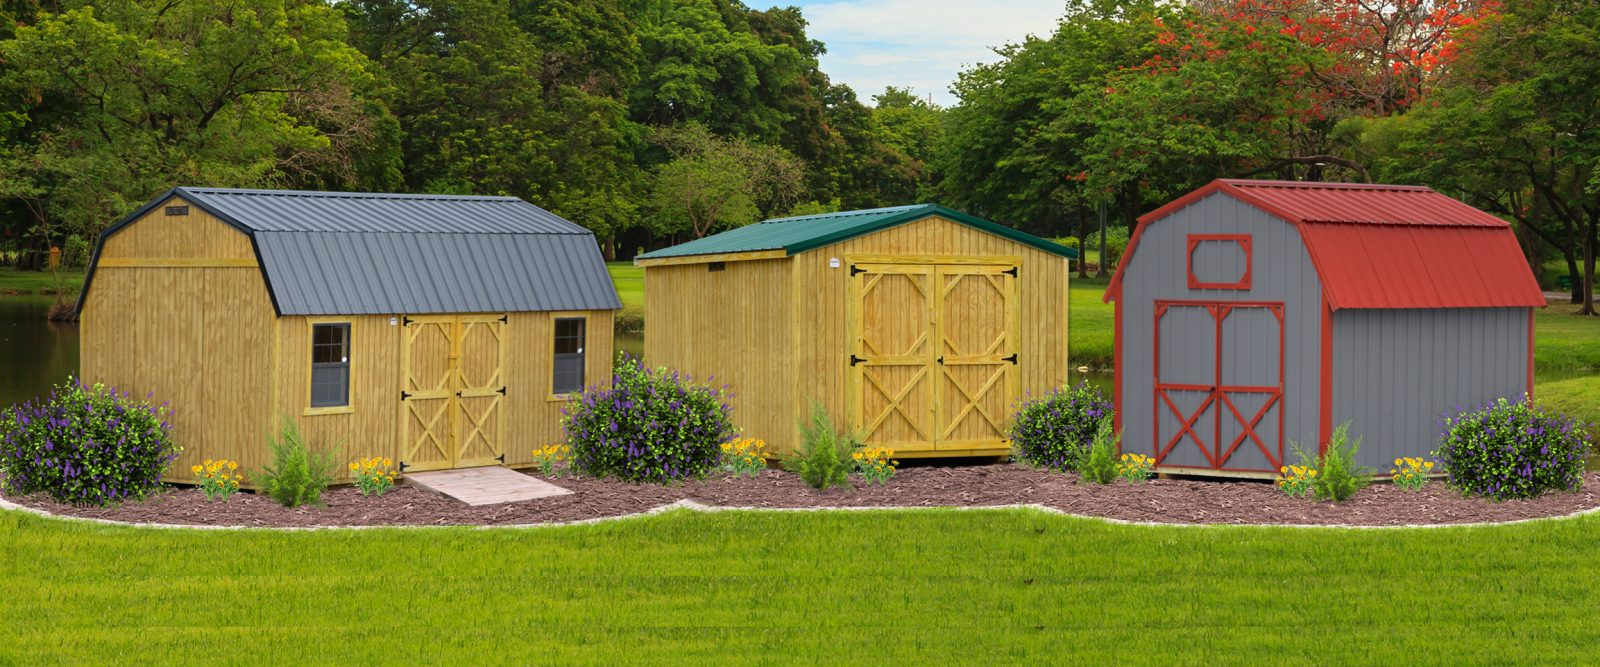 where-can-i-find-shed-pricing-in-va